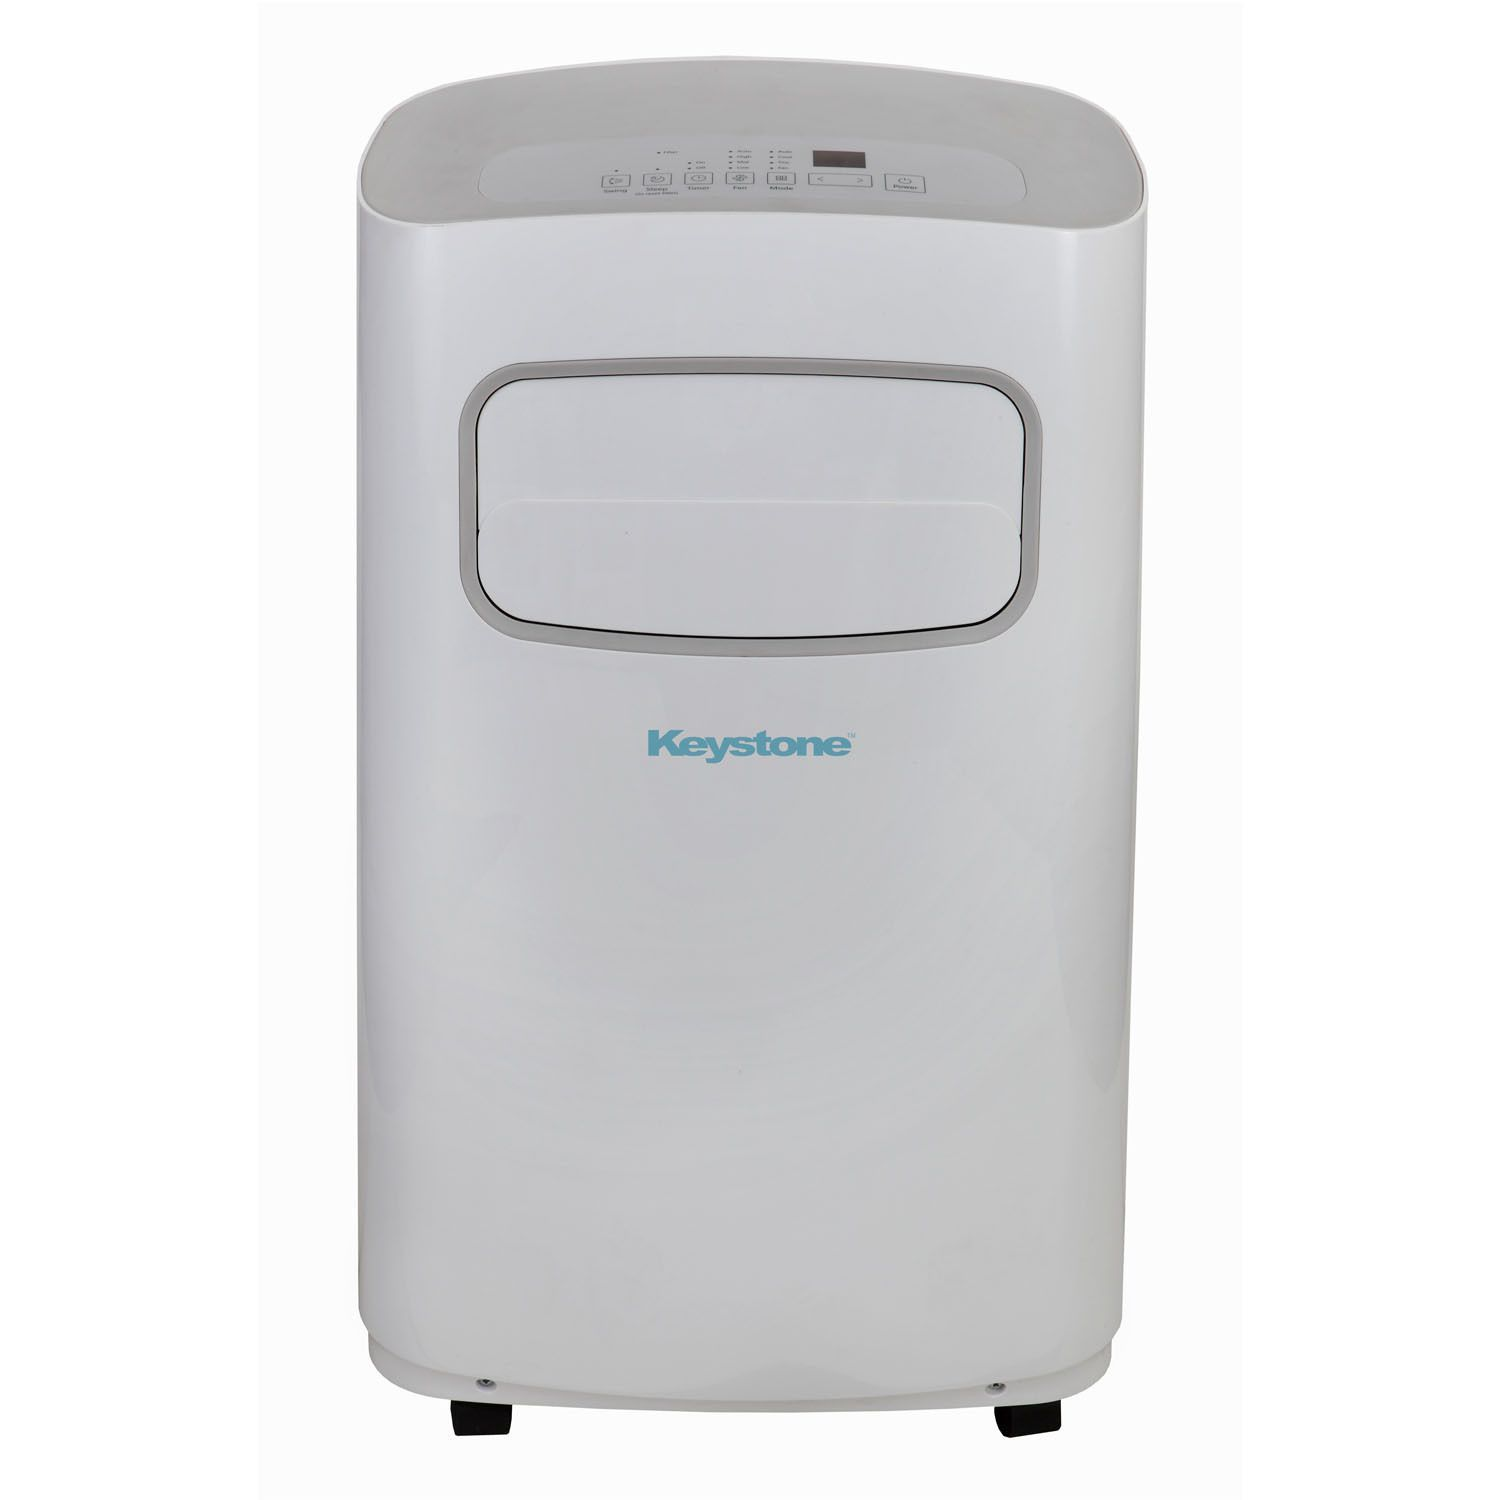 Keystone 14 000 Btu Portable Air Conditioner Cool Only Remote White Gray Grey White Dehumidifiers Remote